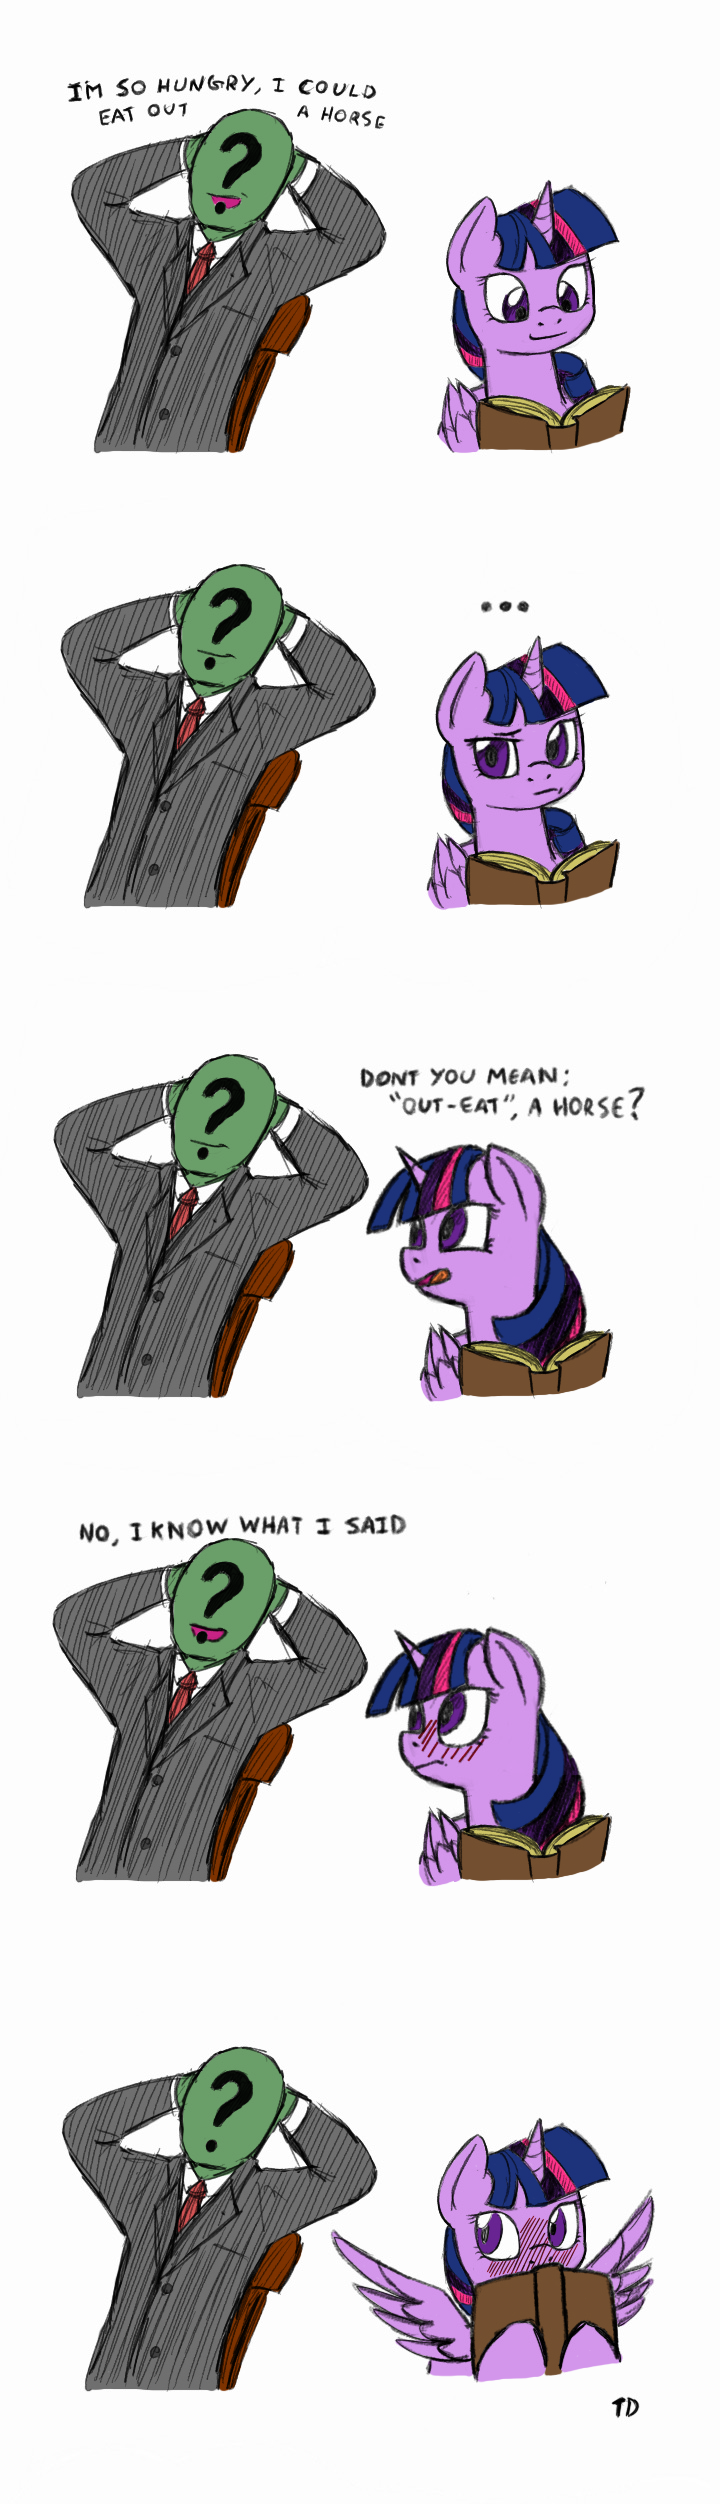 Anon Mlp Comic equestria daily - mlp stuff!: weird pony trends - the